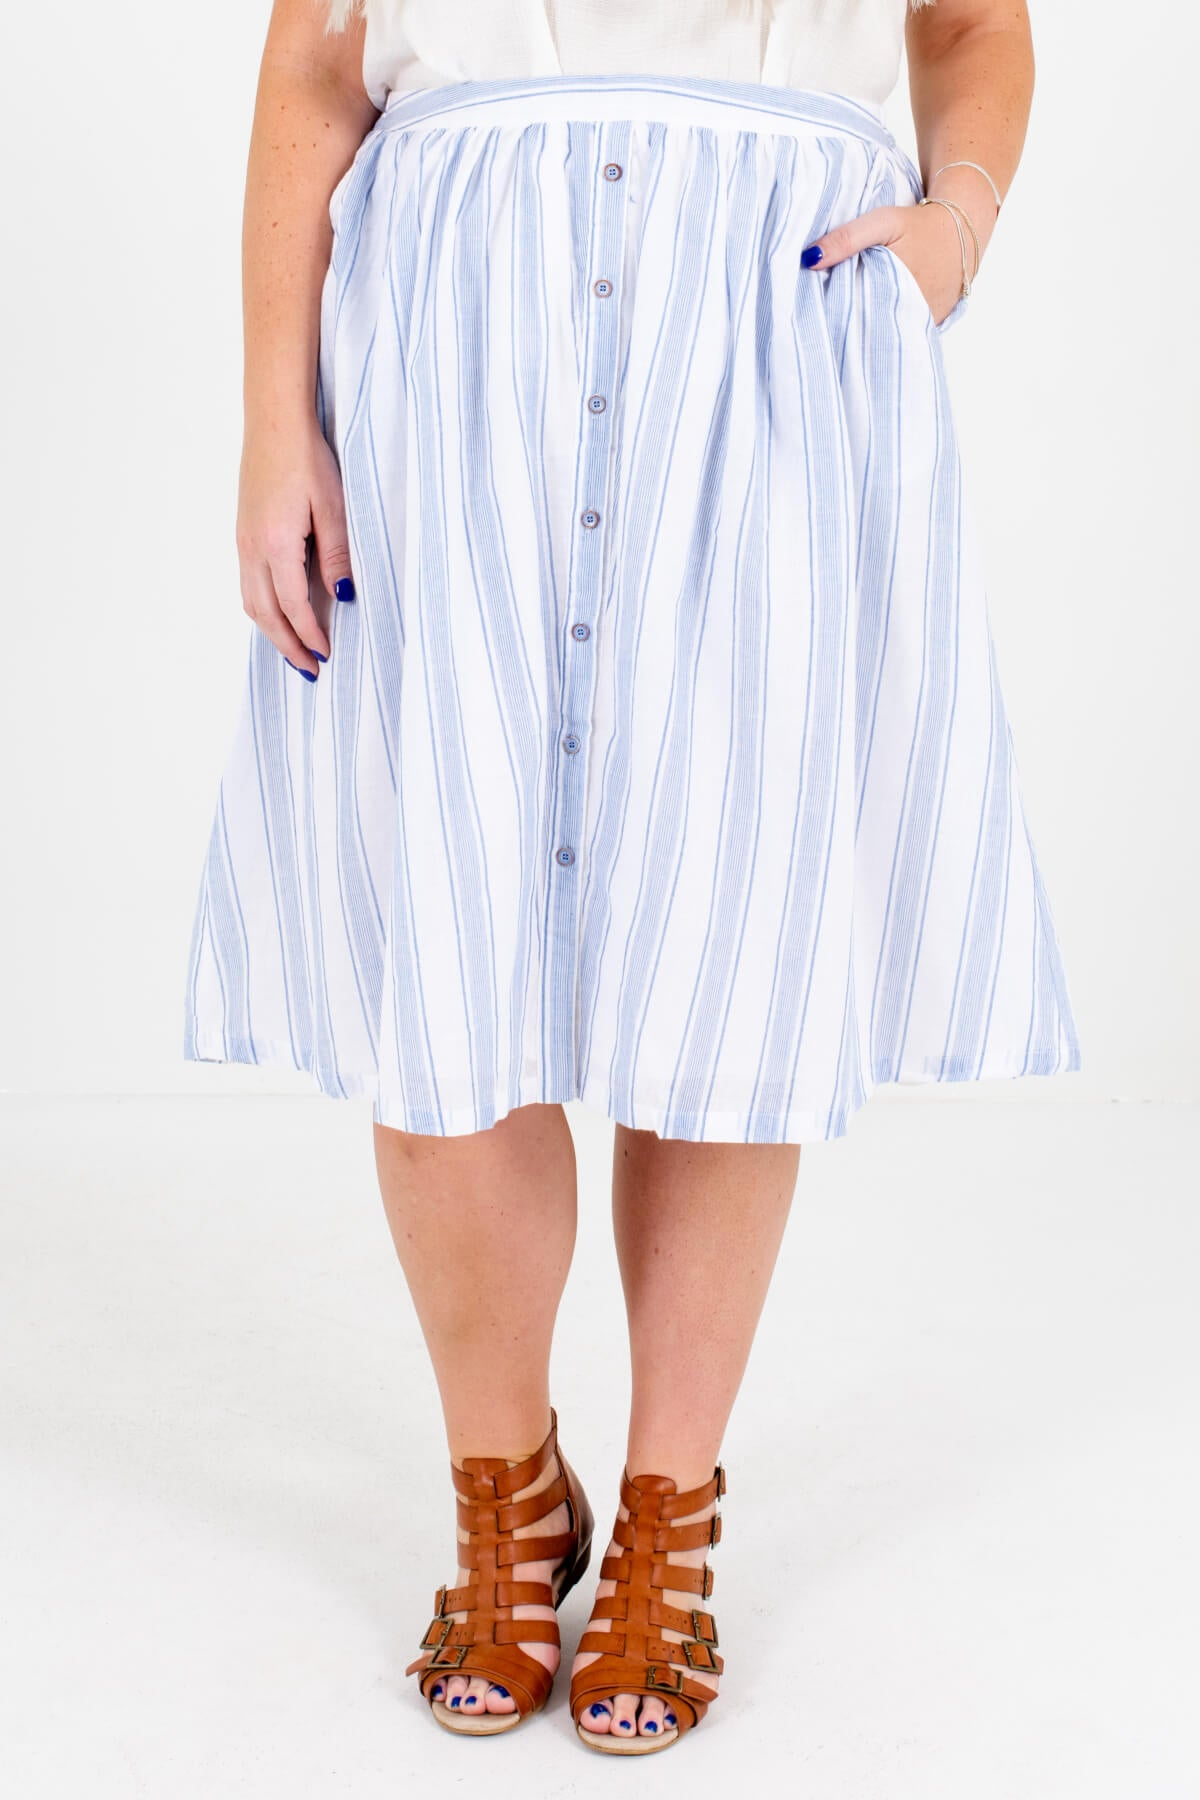 White and Blue Stripe Patterned Boutique Plus Size Midi Skirts for Women